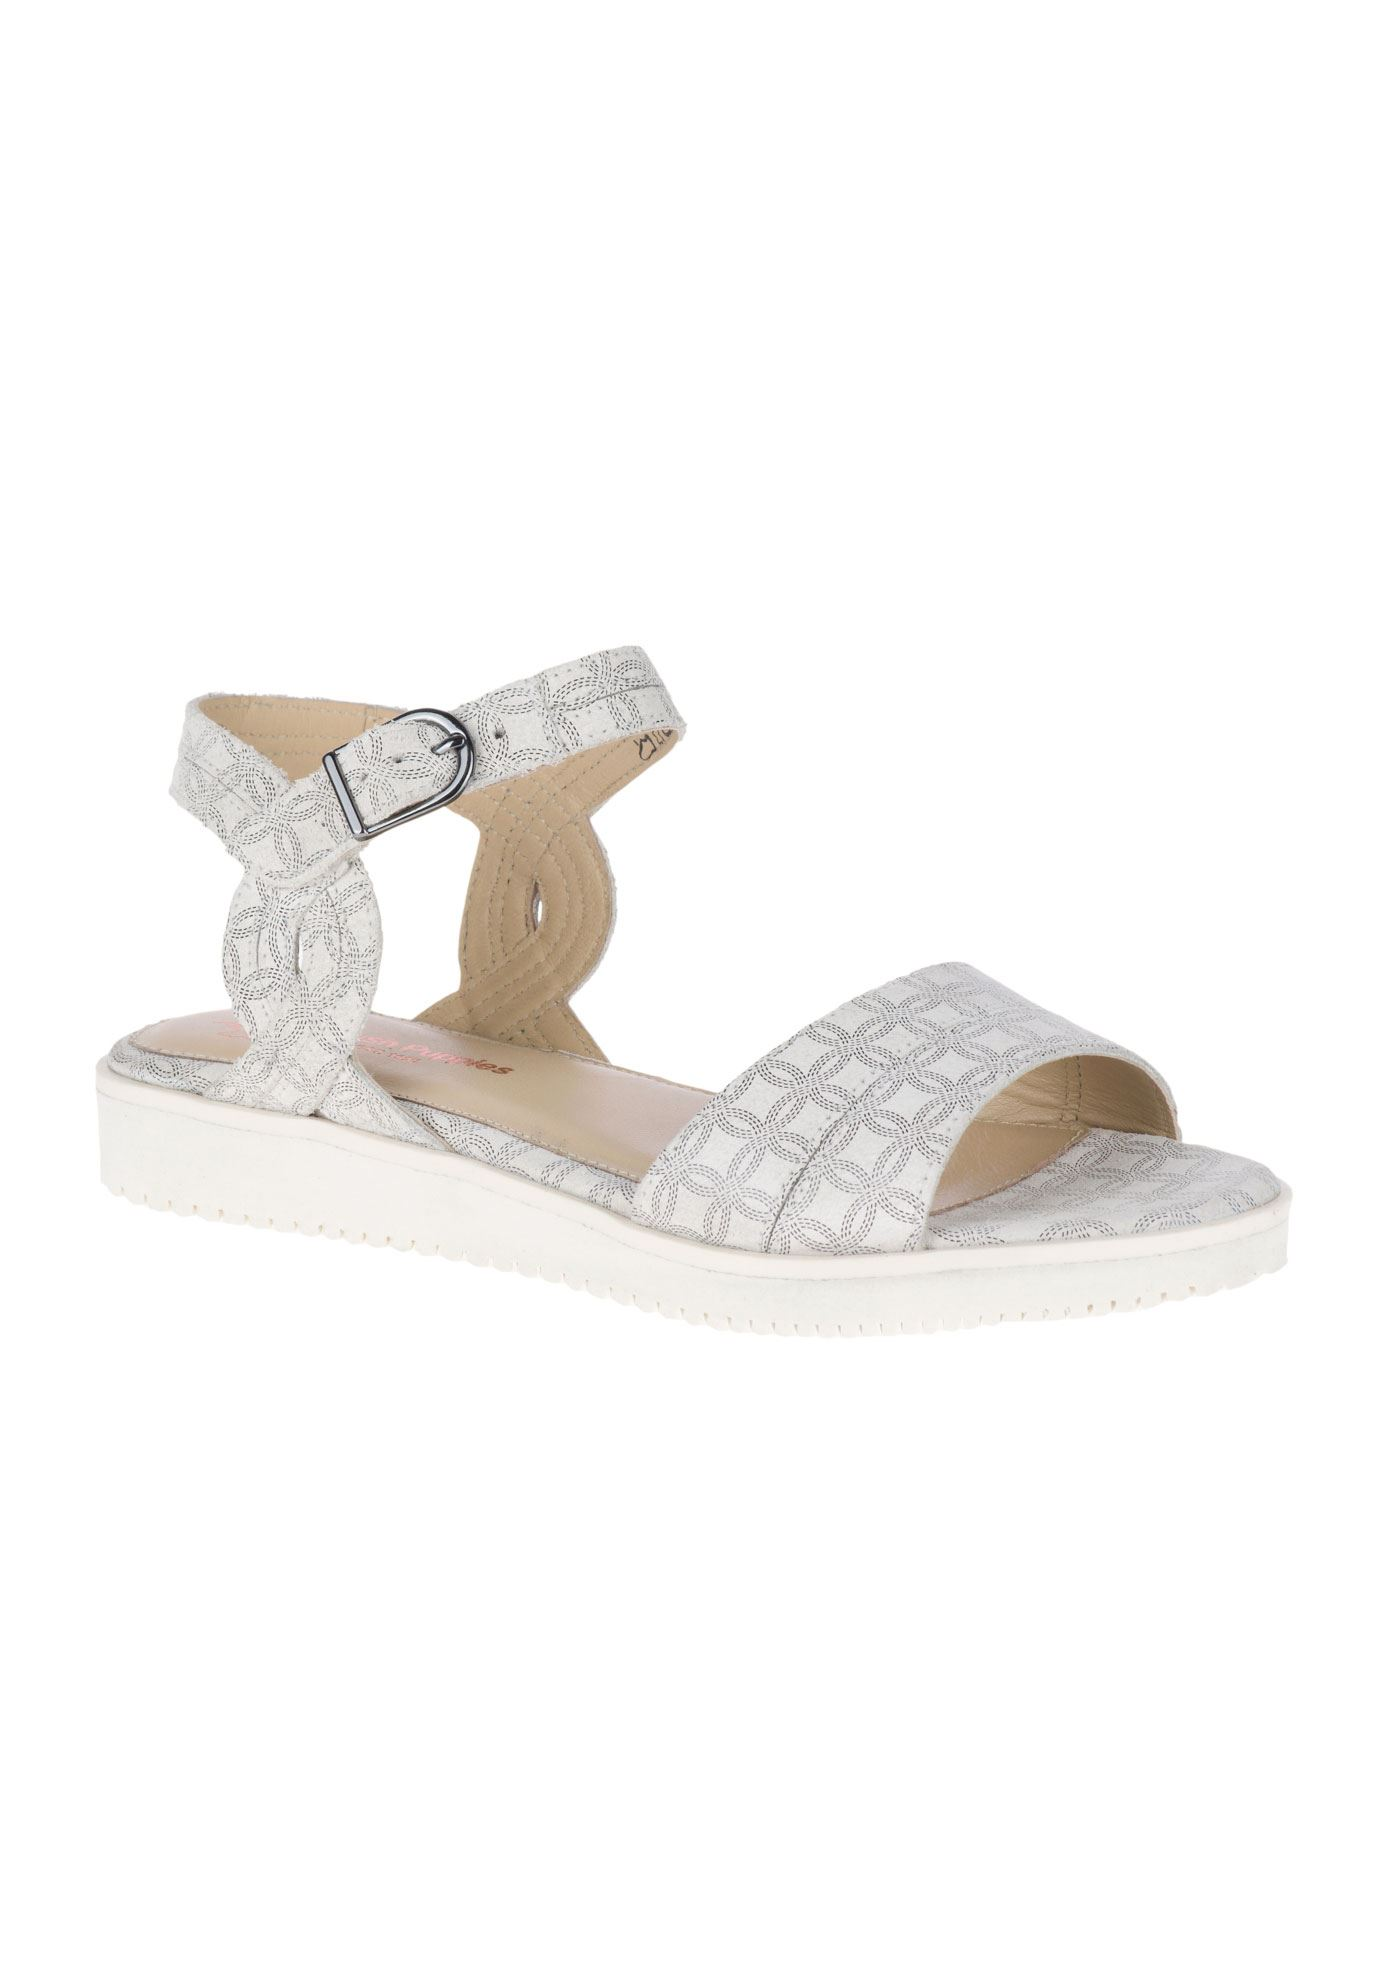 Briard Qtr Strap Sandals by Hush Puppies®,